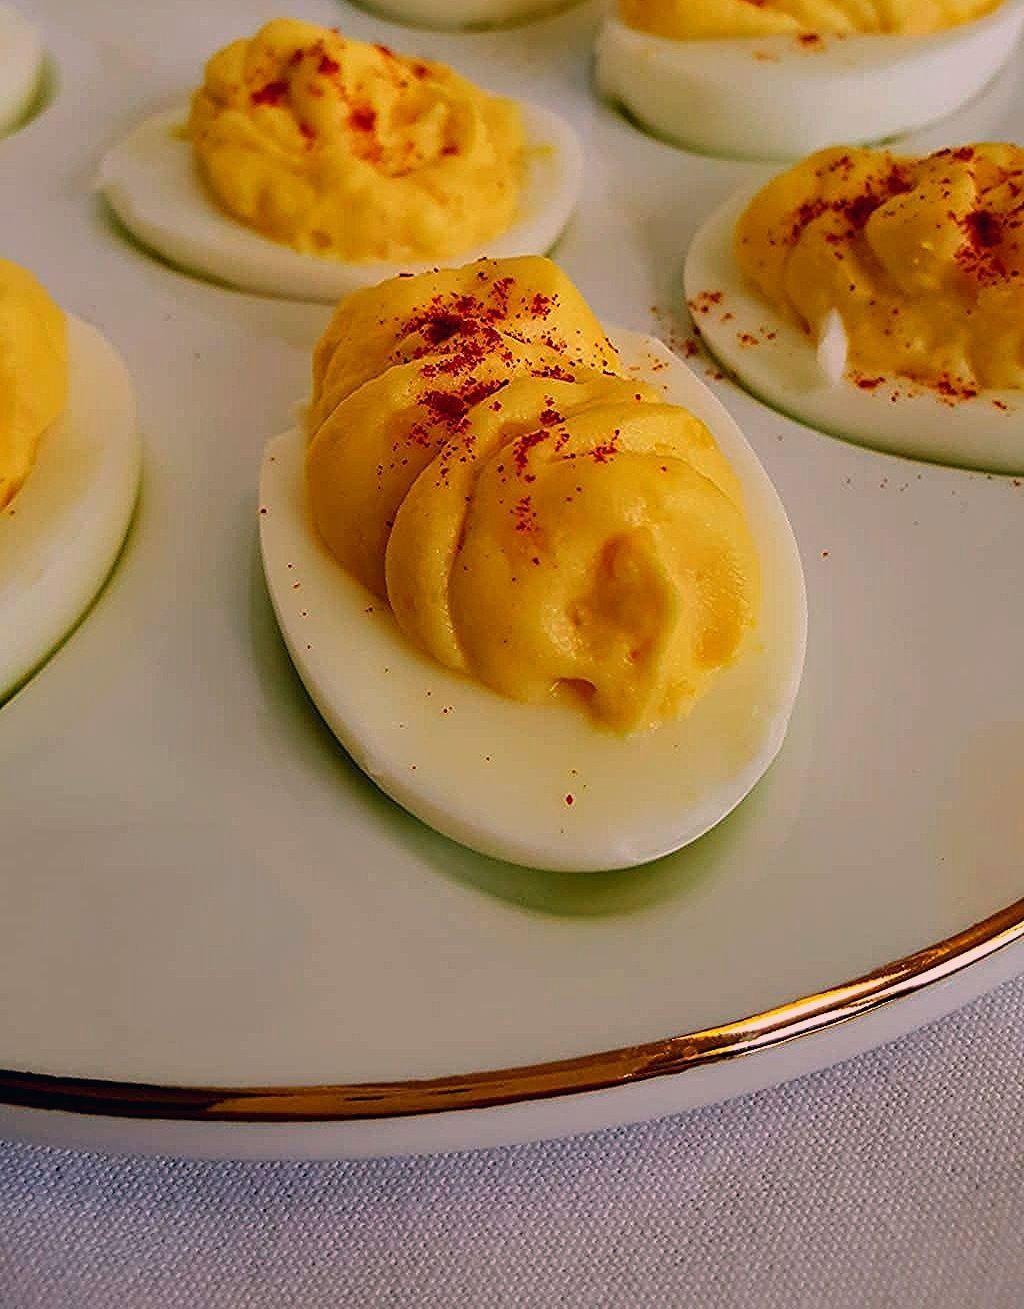 Classic Deviled Egg Recipe using mayonnaise, mustard, sugar, vinegar, and salt. Including a foolproof way to fill your deviled eggs and how to video. #deviledeggs